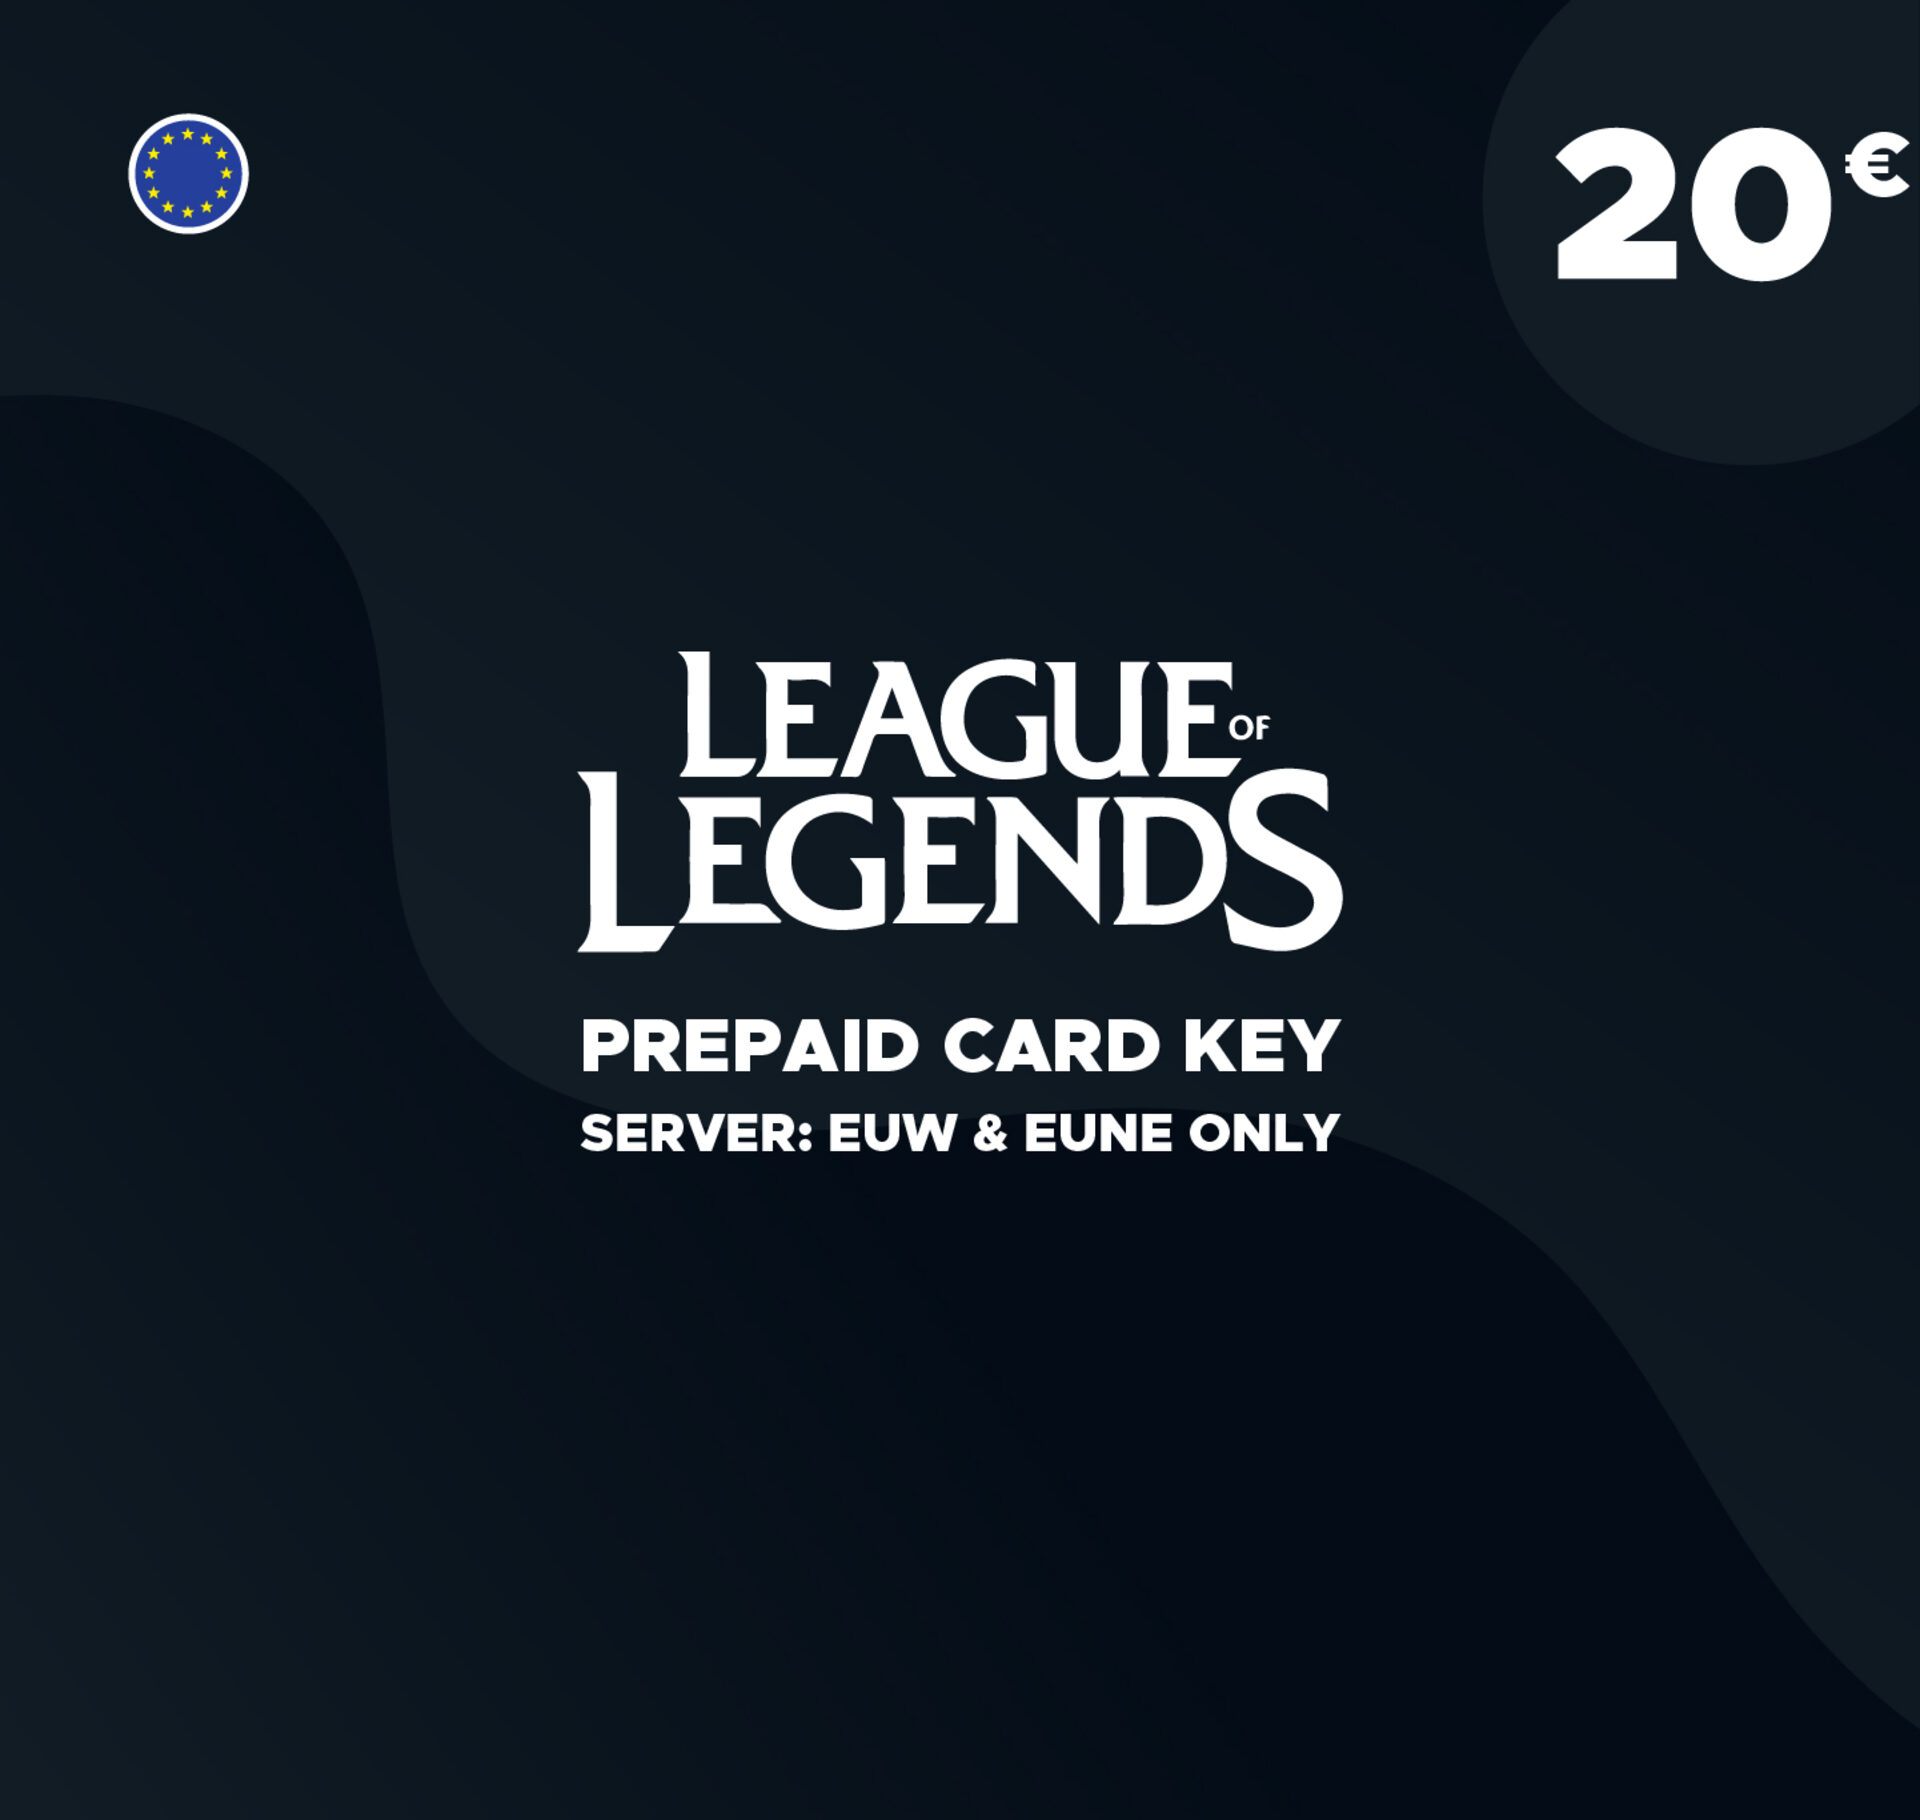 Lol Guthaben Karte.League Of Legends 20 Gift Card Key 2800 Riot Points Europe Server Only